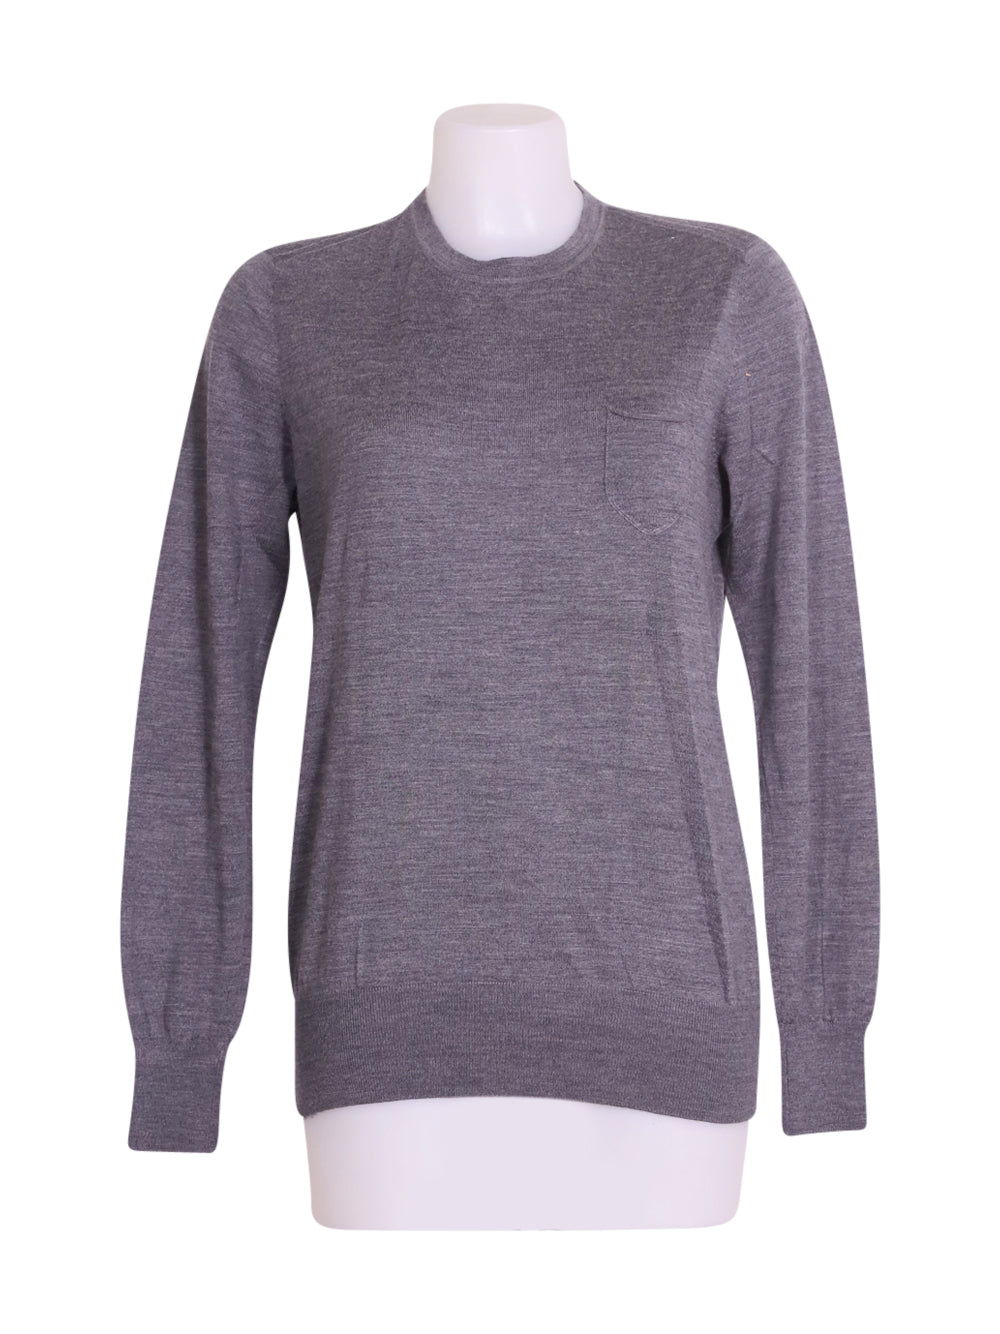 Front photo of Preloved Kaos Grey Man's sweater - size 40/L